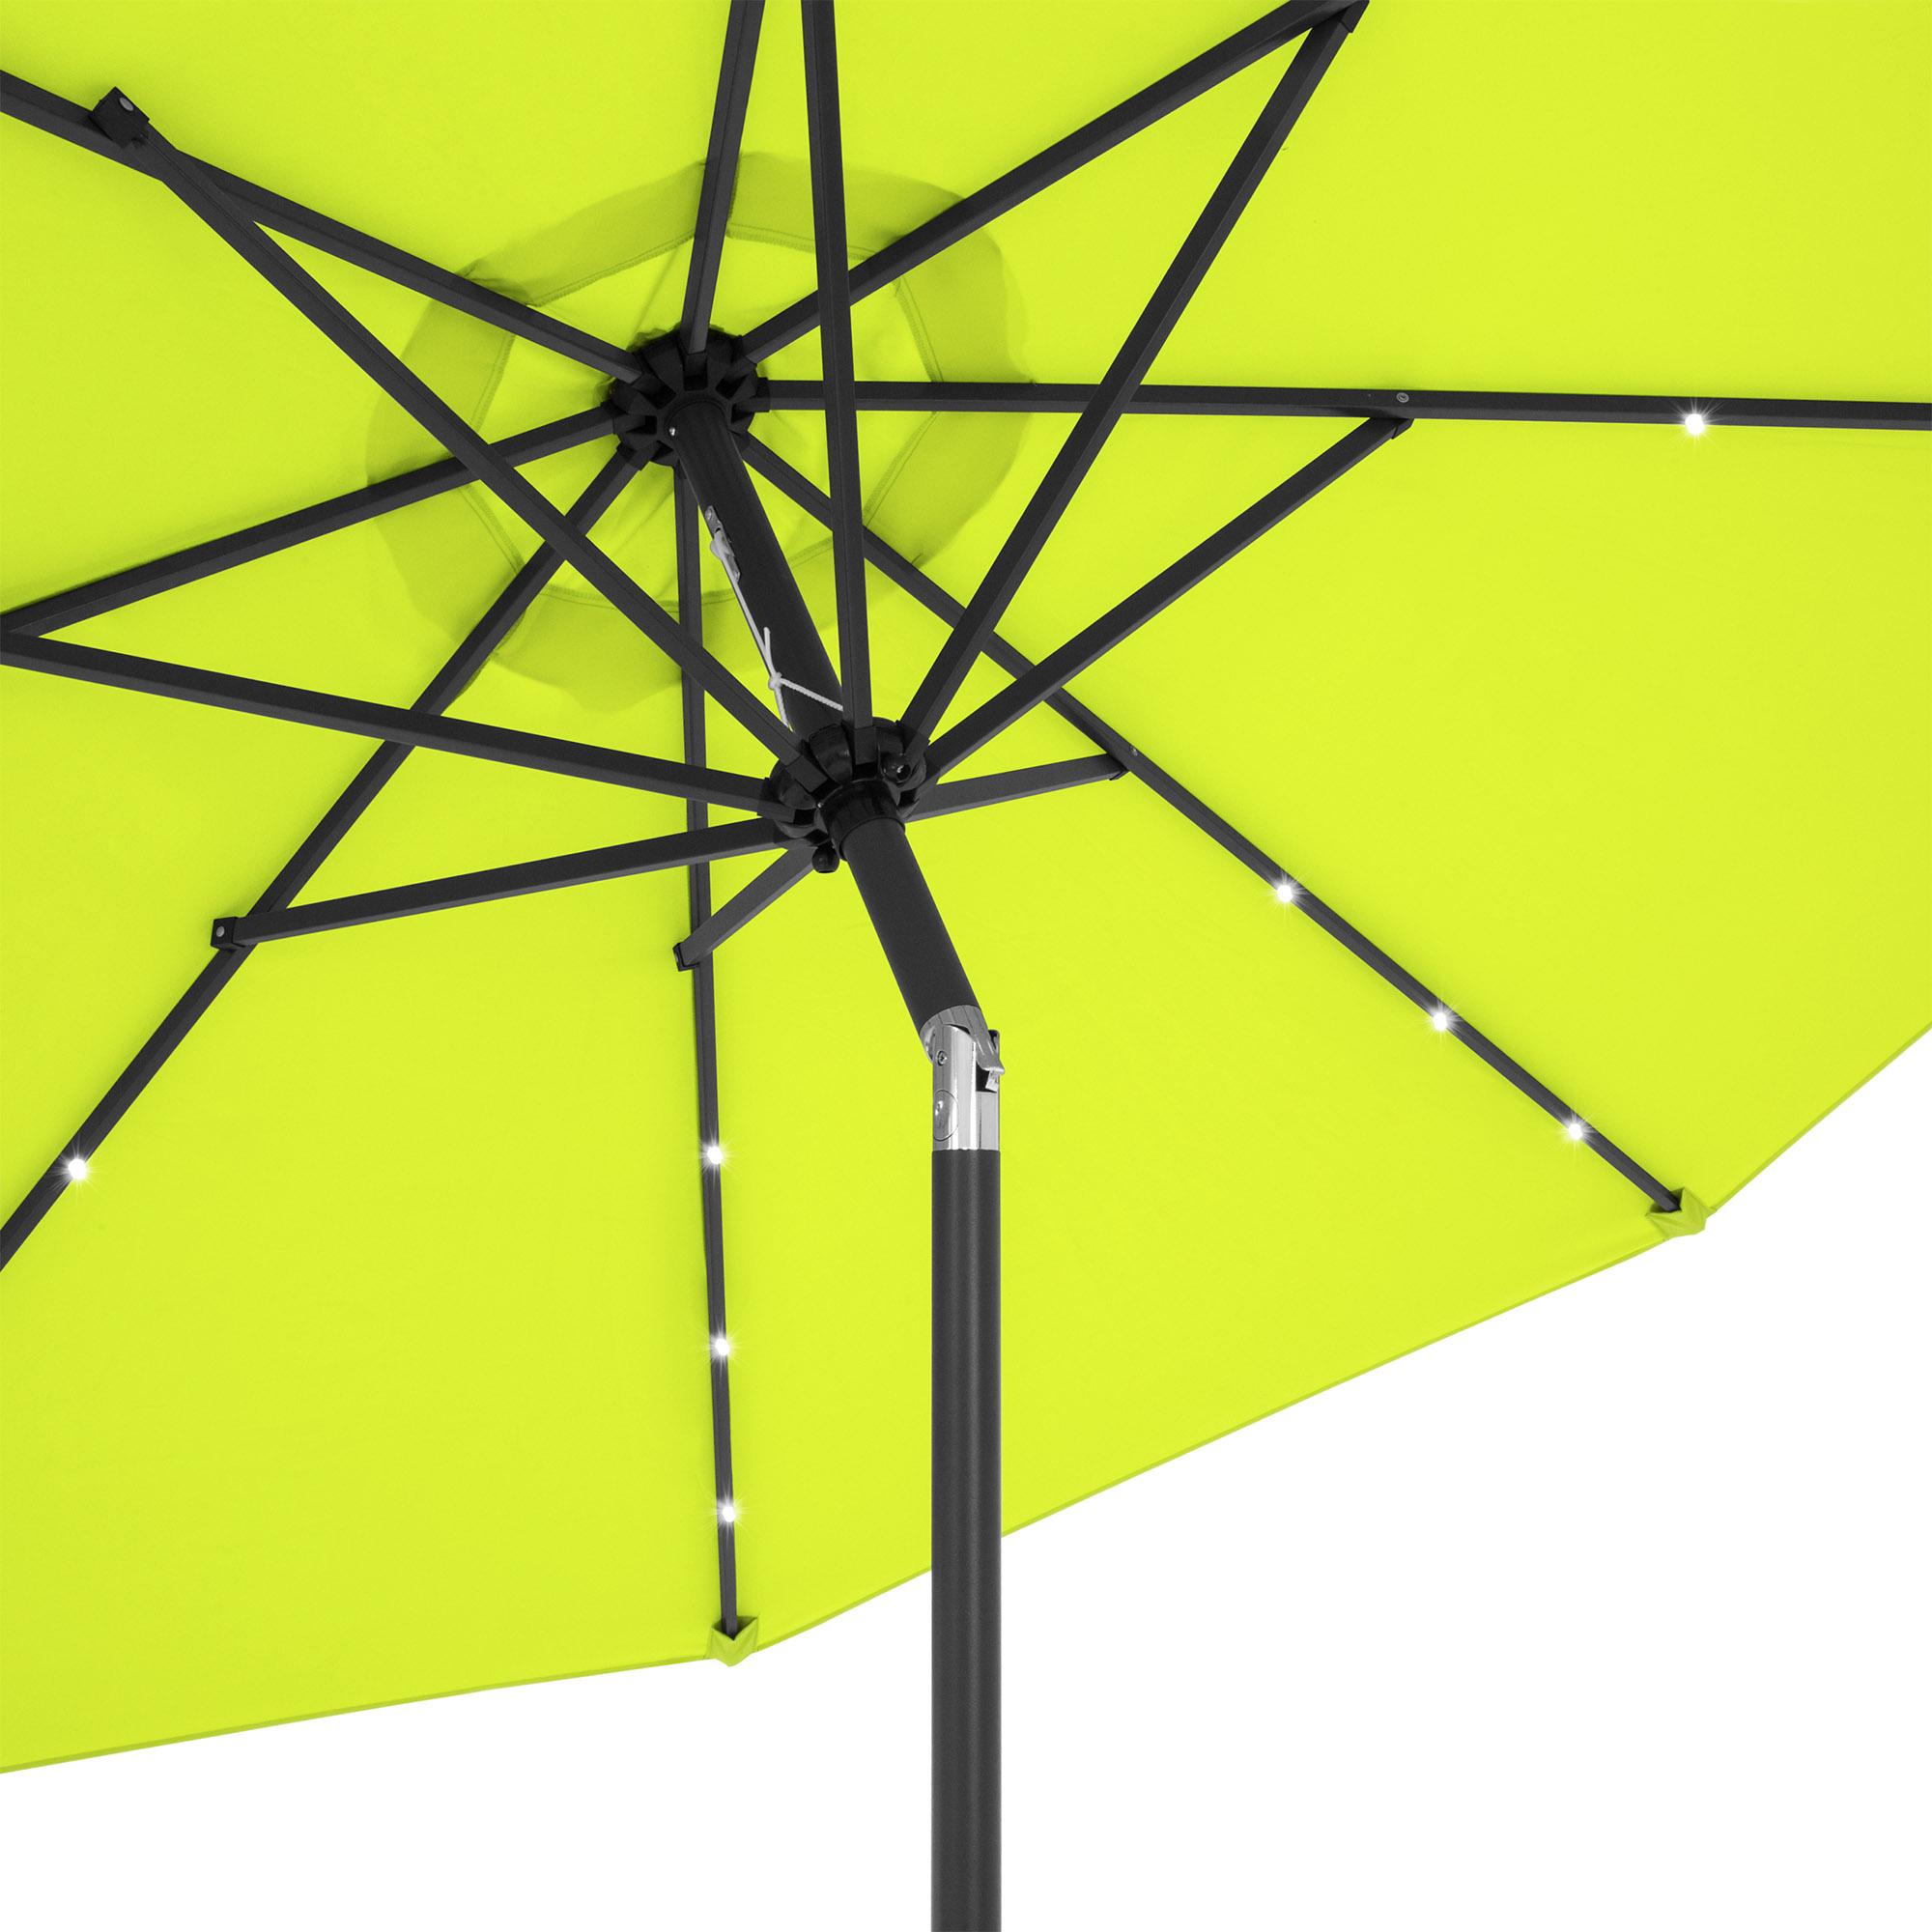 BCP-10ft-Solar-LED-Lighted-Patio-Umbrella-w-Tilt-Adjustment-Fade-Resistance thumbnail 40